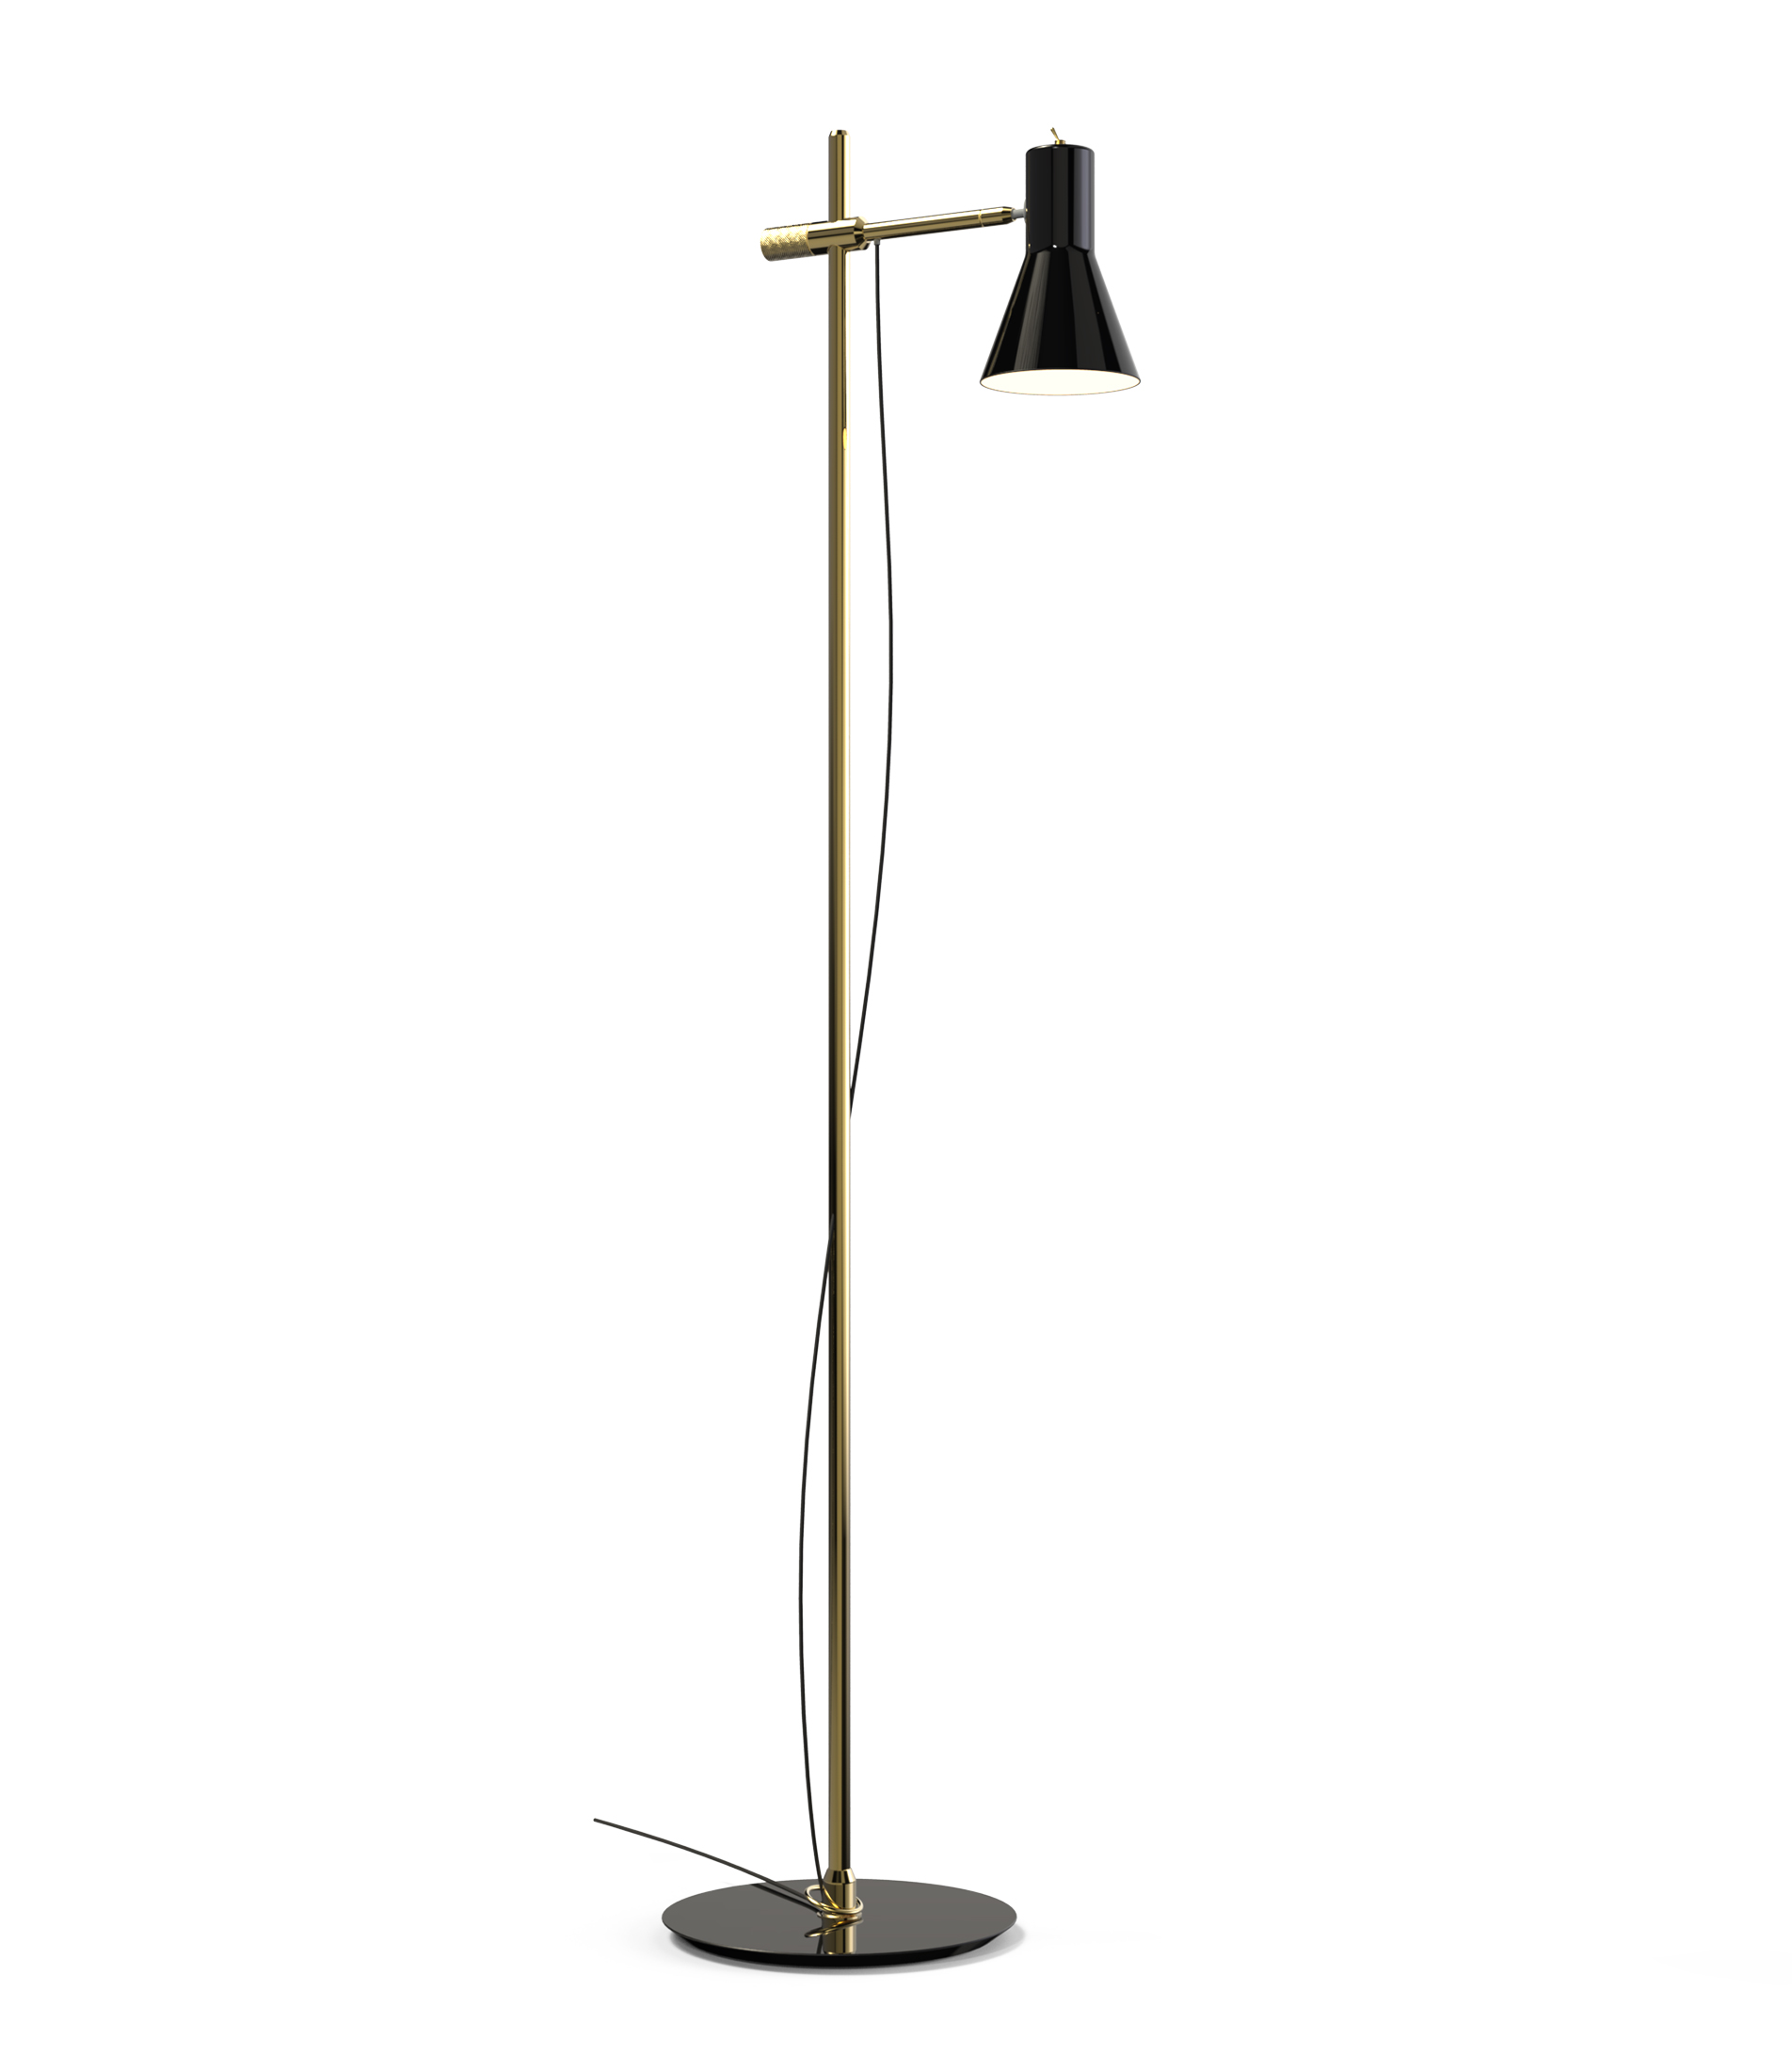 Stunning Modern Floor Lamps for Your Industrial Design (1)  Stunning Modern Floor Lamps for Your Industrial Design Stunning Modern Floor Lamps for Your Industrial Design 3